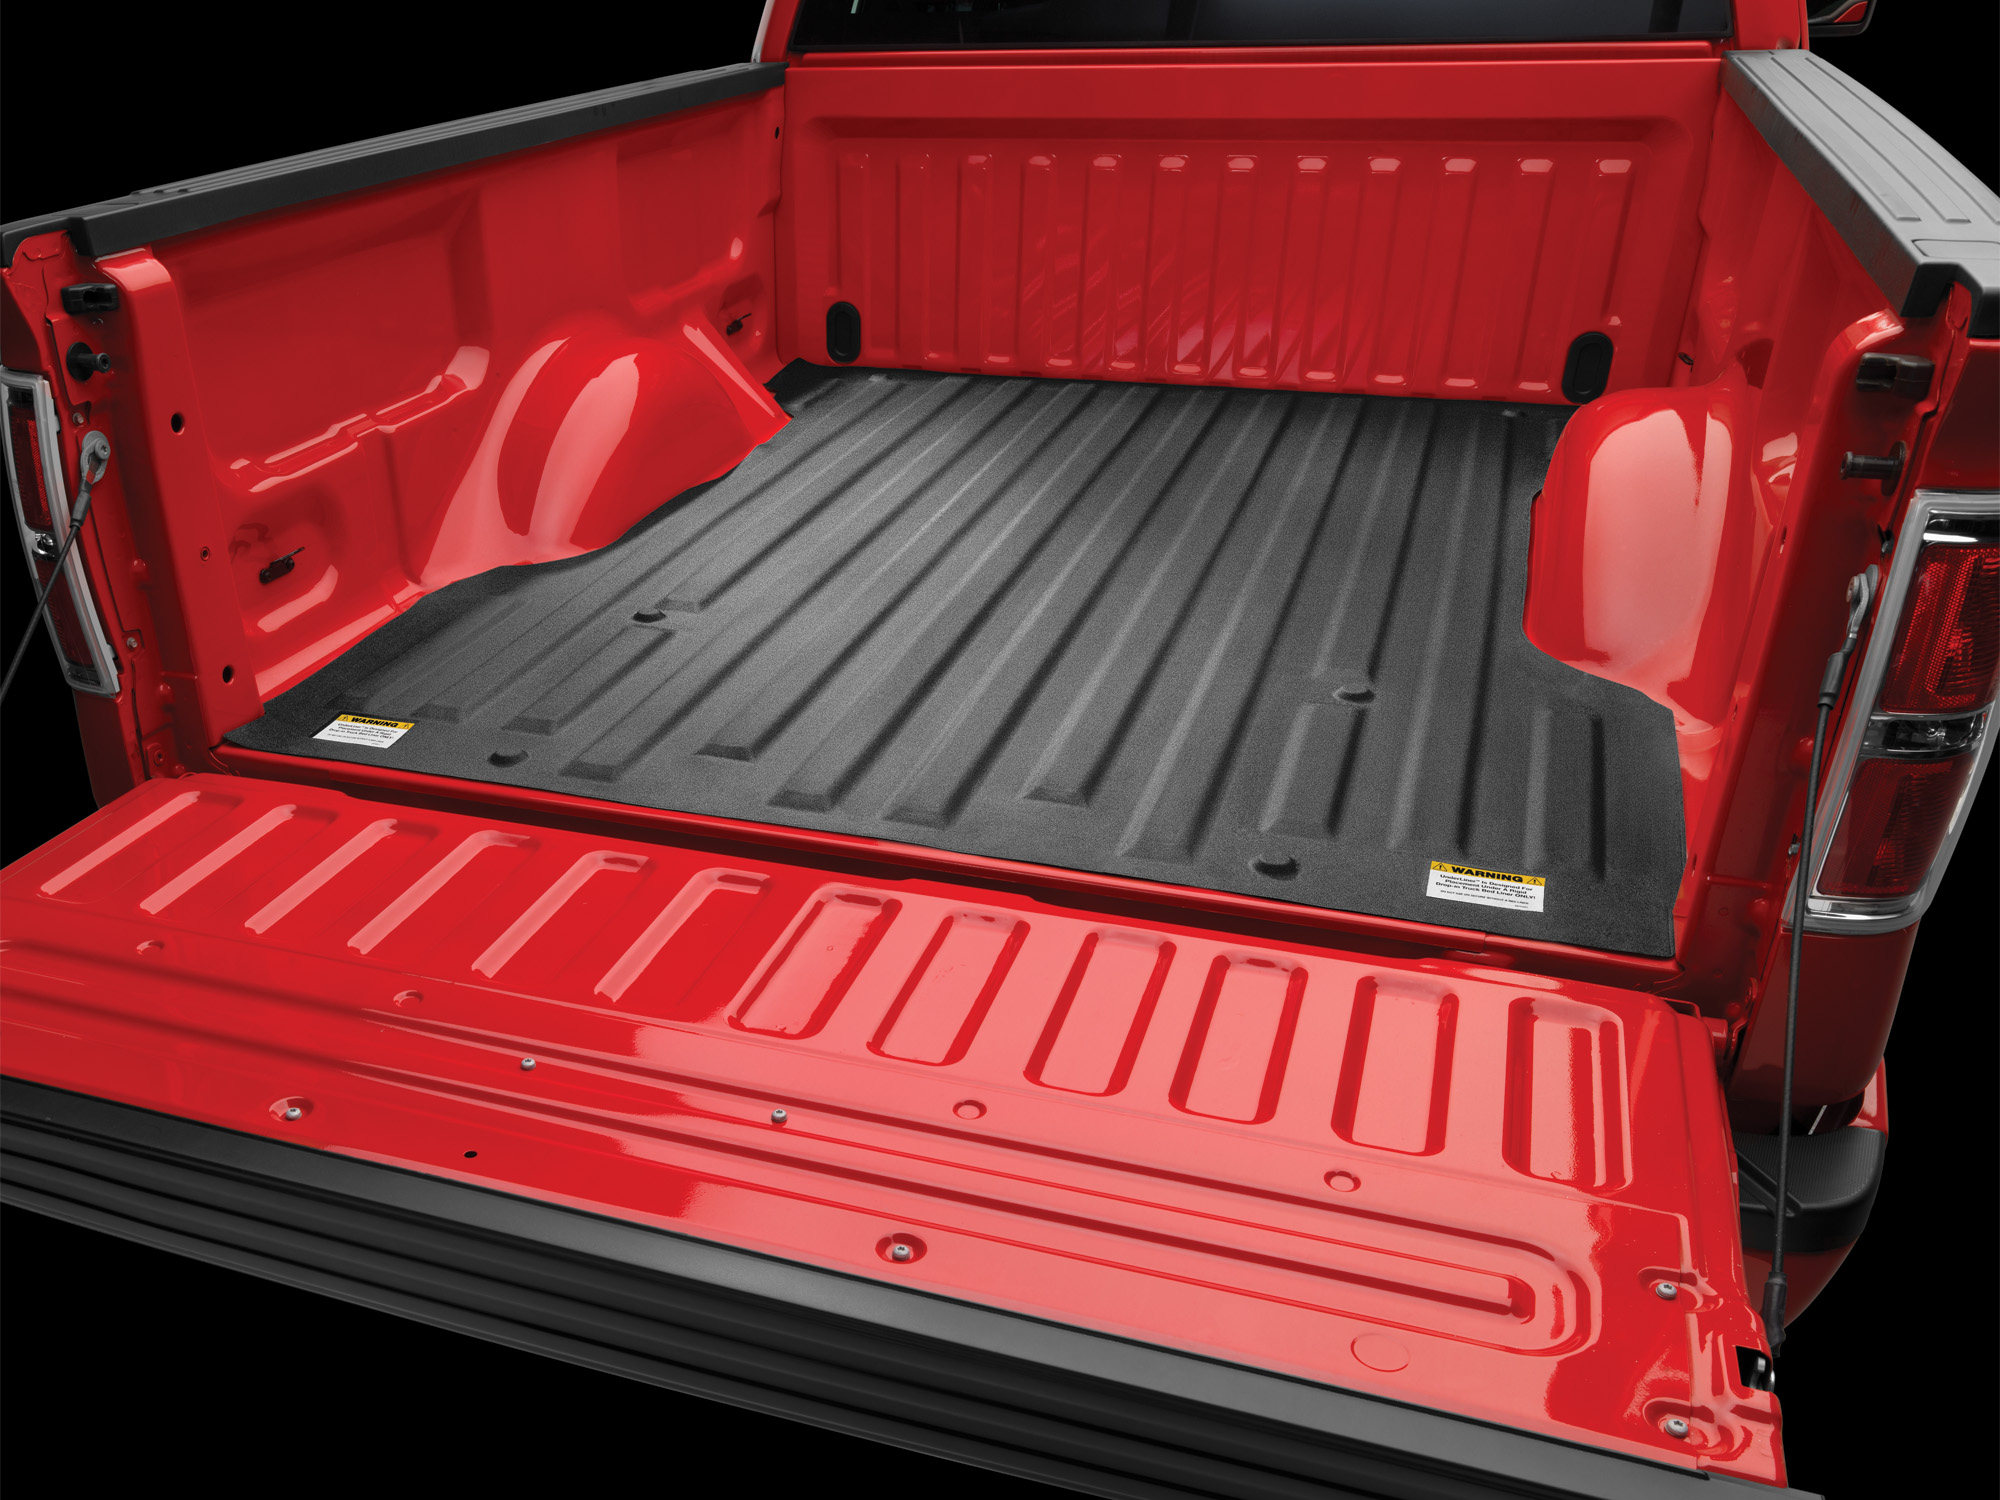 Weathertech mats cleaner - Underliner Sup Sup Pickup Truck Bed Liner